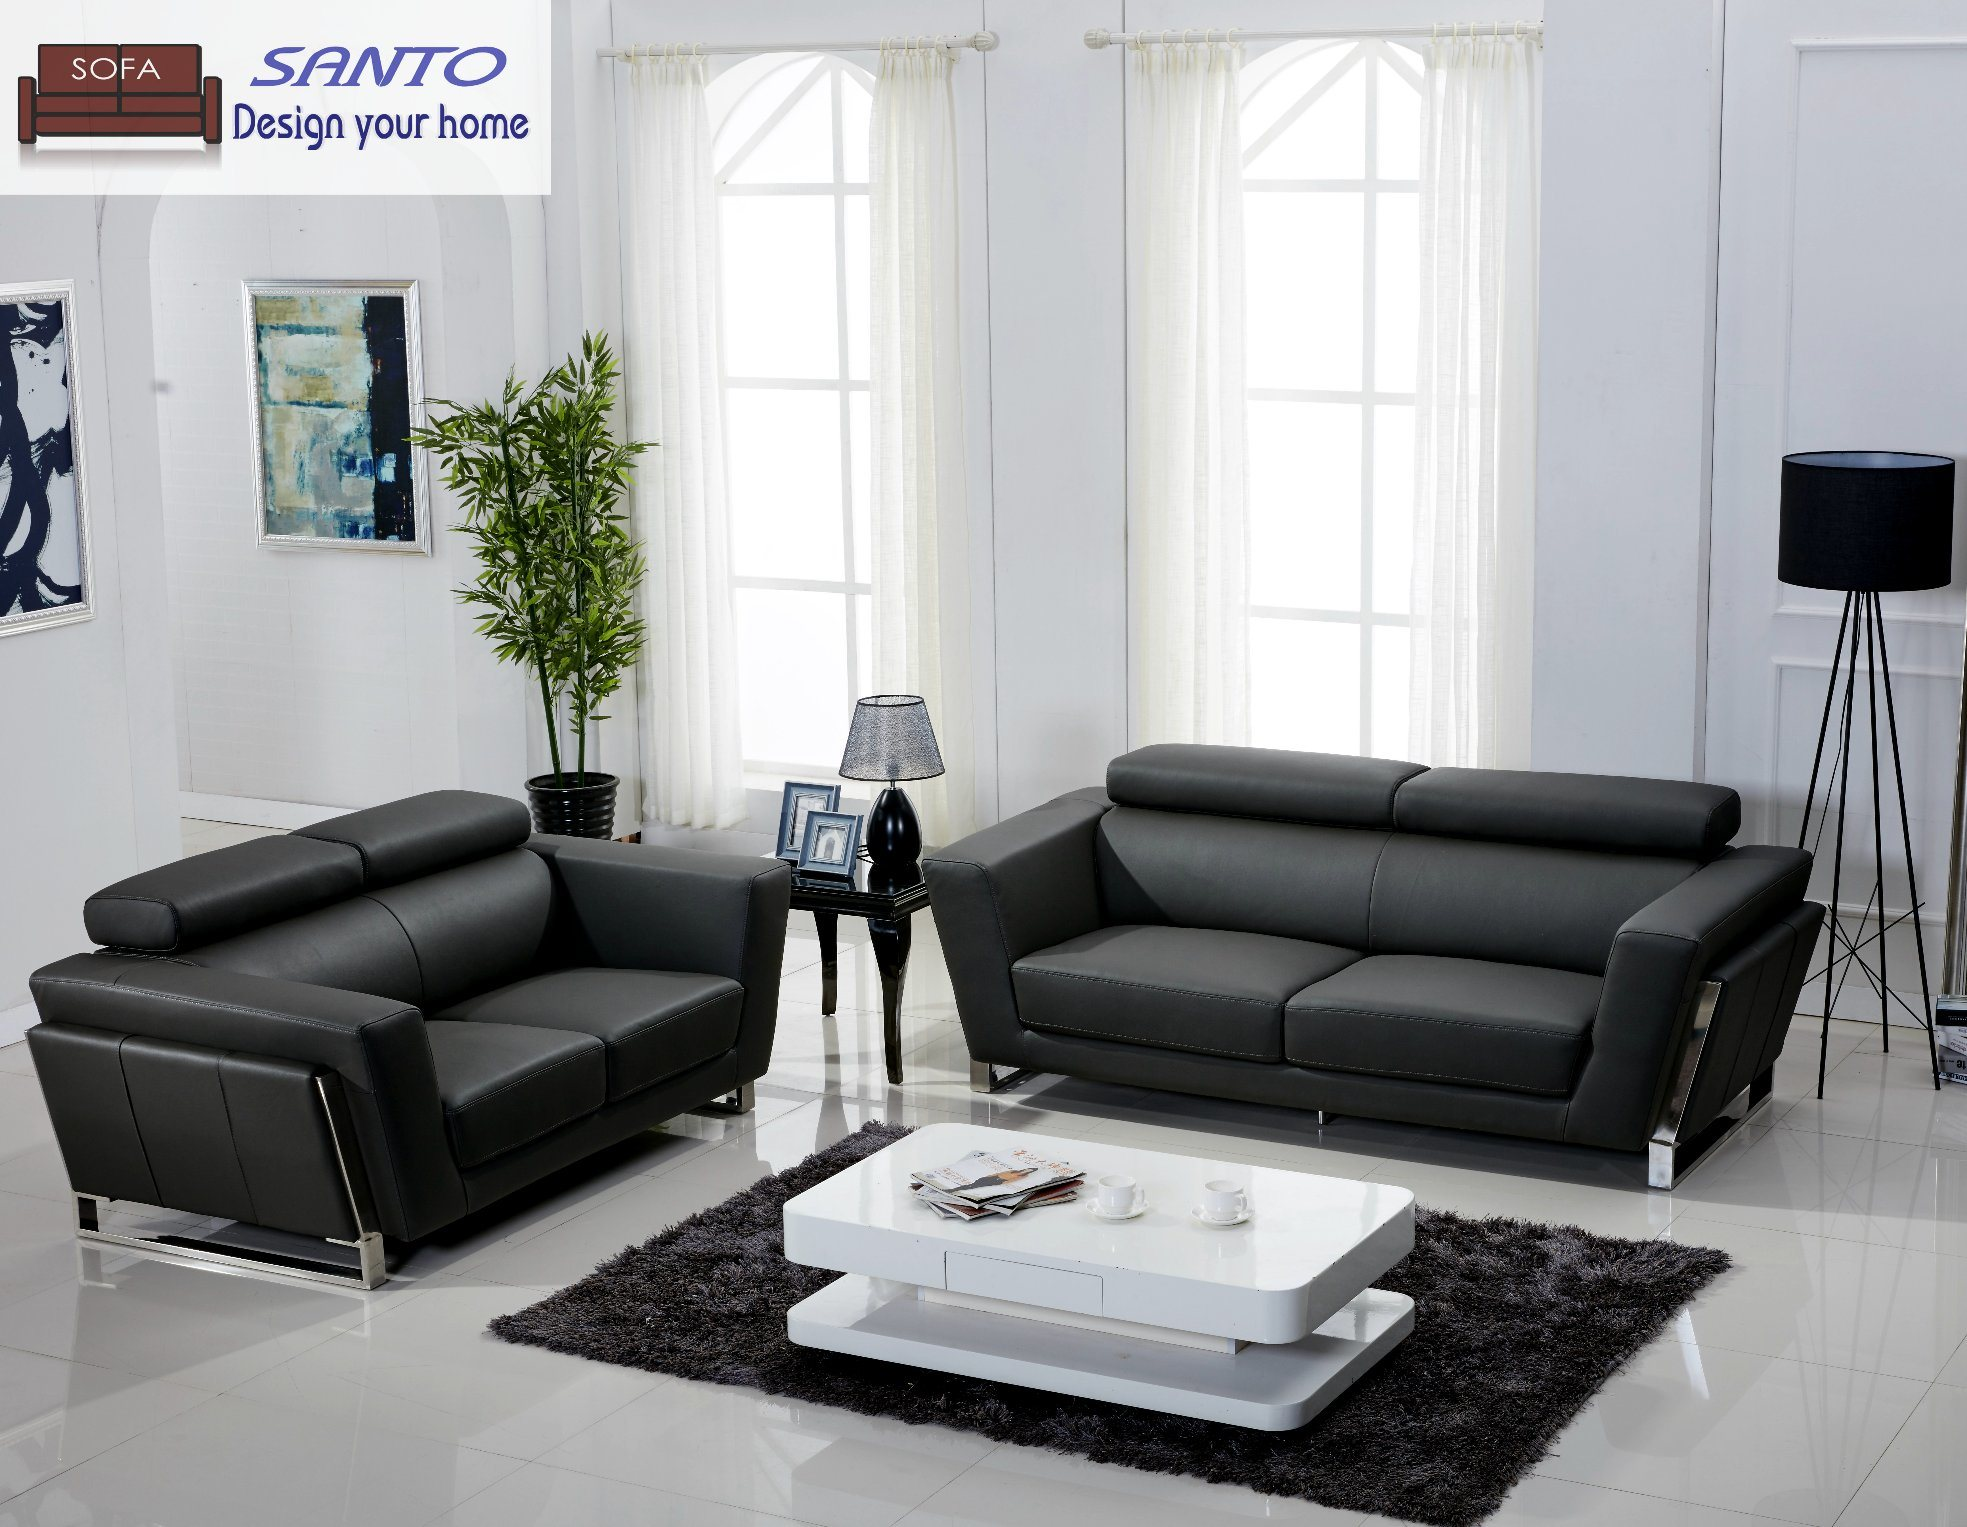 China Lifestyle Stainless Steel Leather Sofa 3 2 1 Seater China 7 Seater Sectional Sofa 9 Seater Sectional Sofa